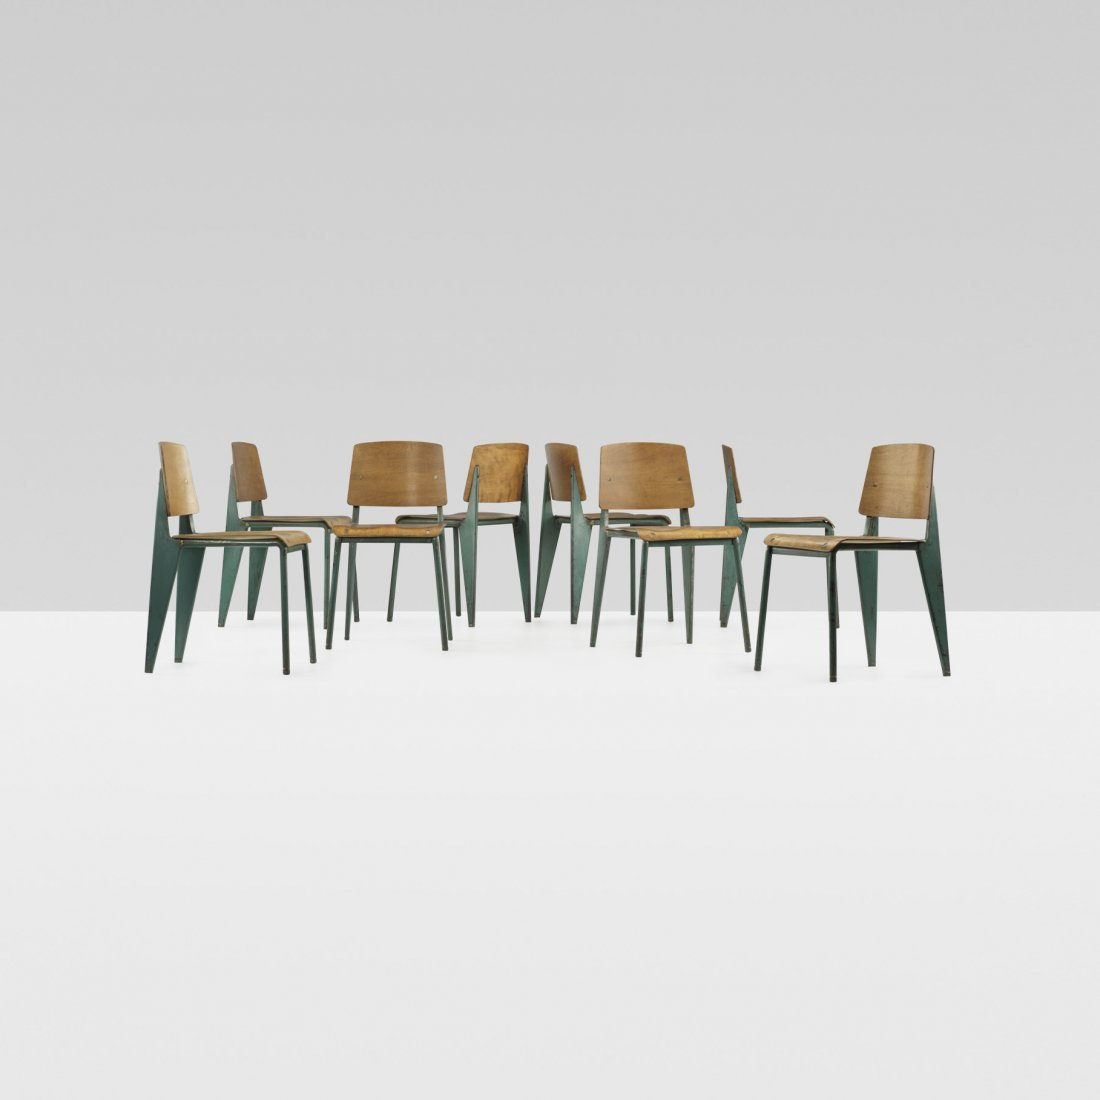 118: Jean  Prouvé No. 4 chairs, set of eight